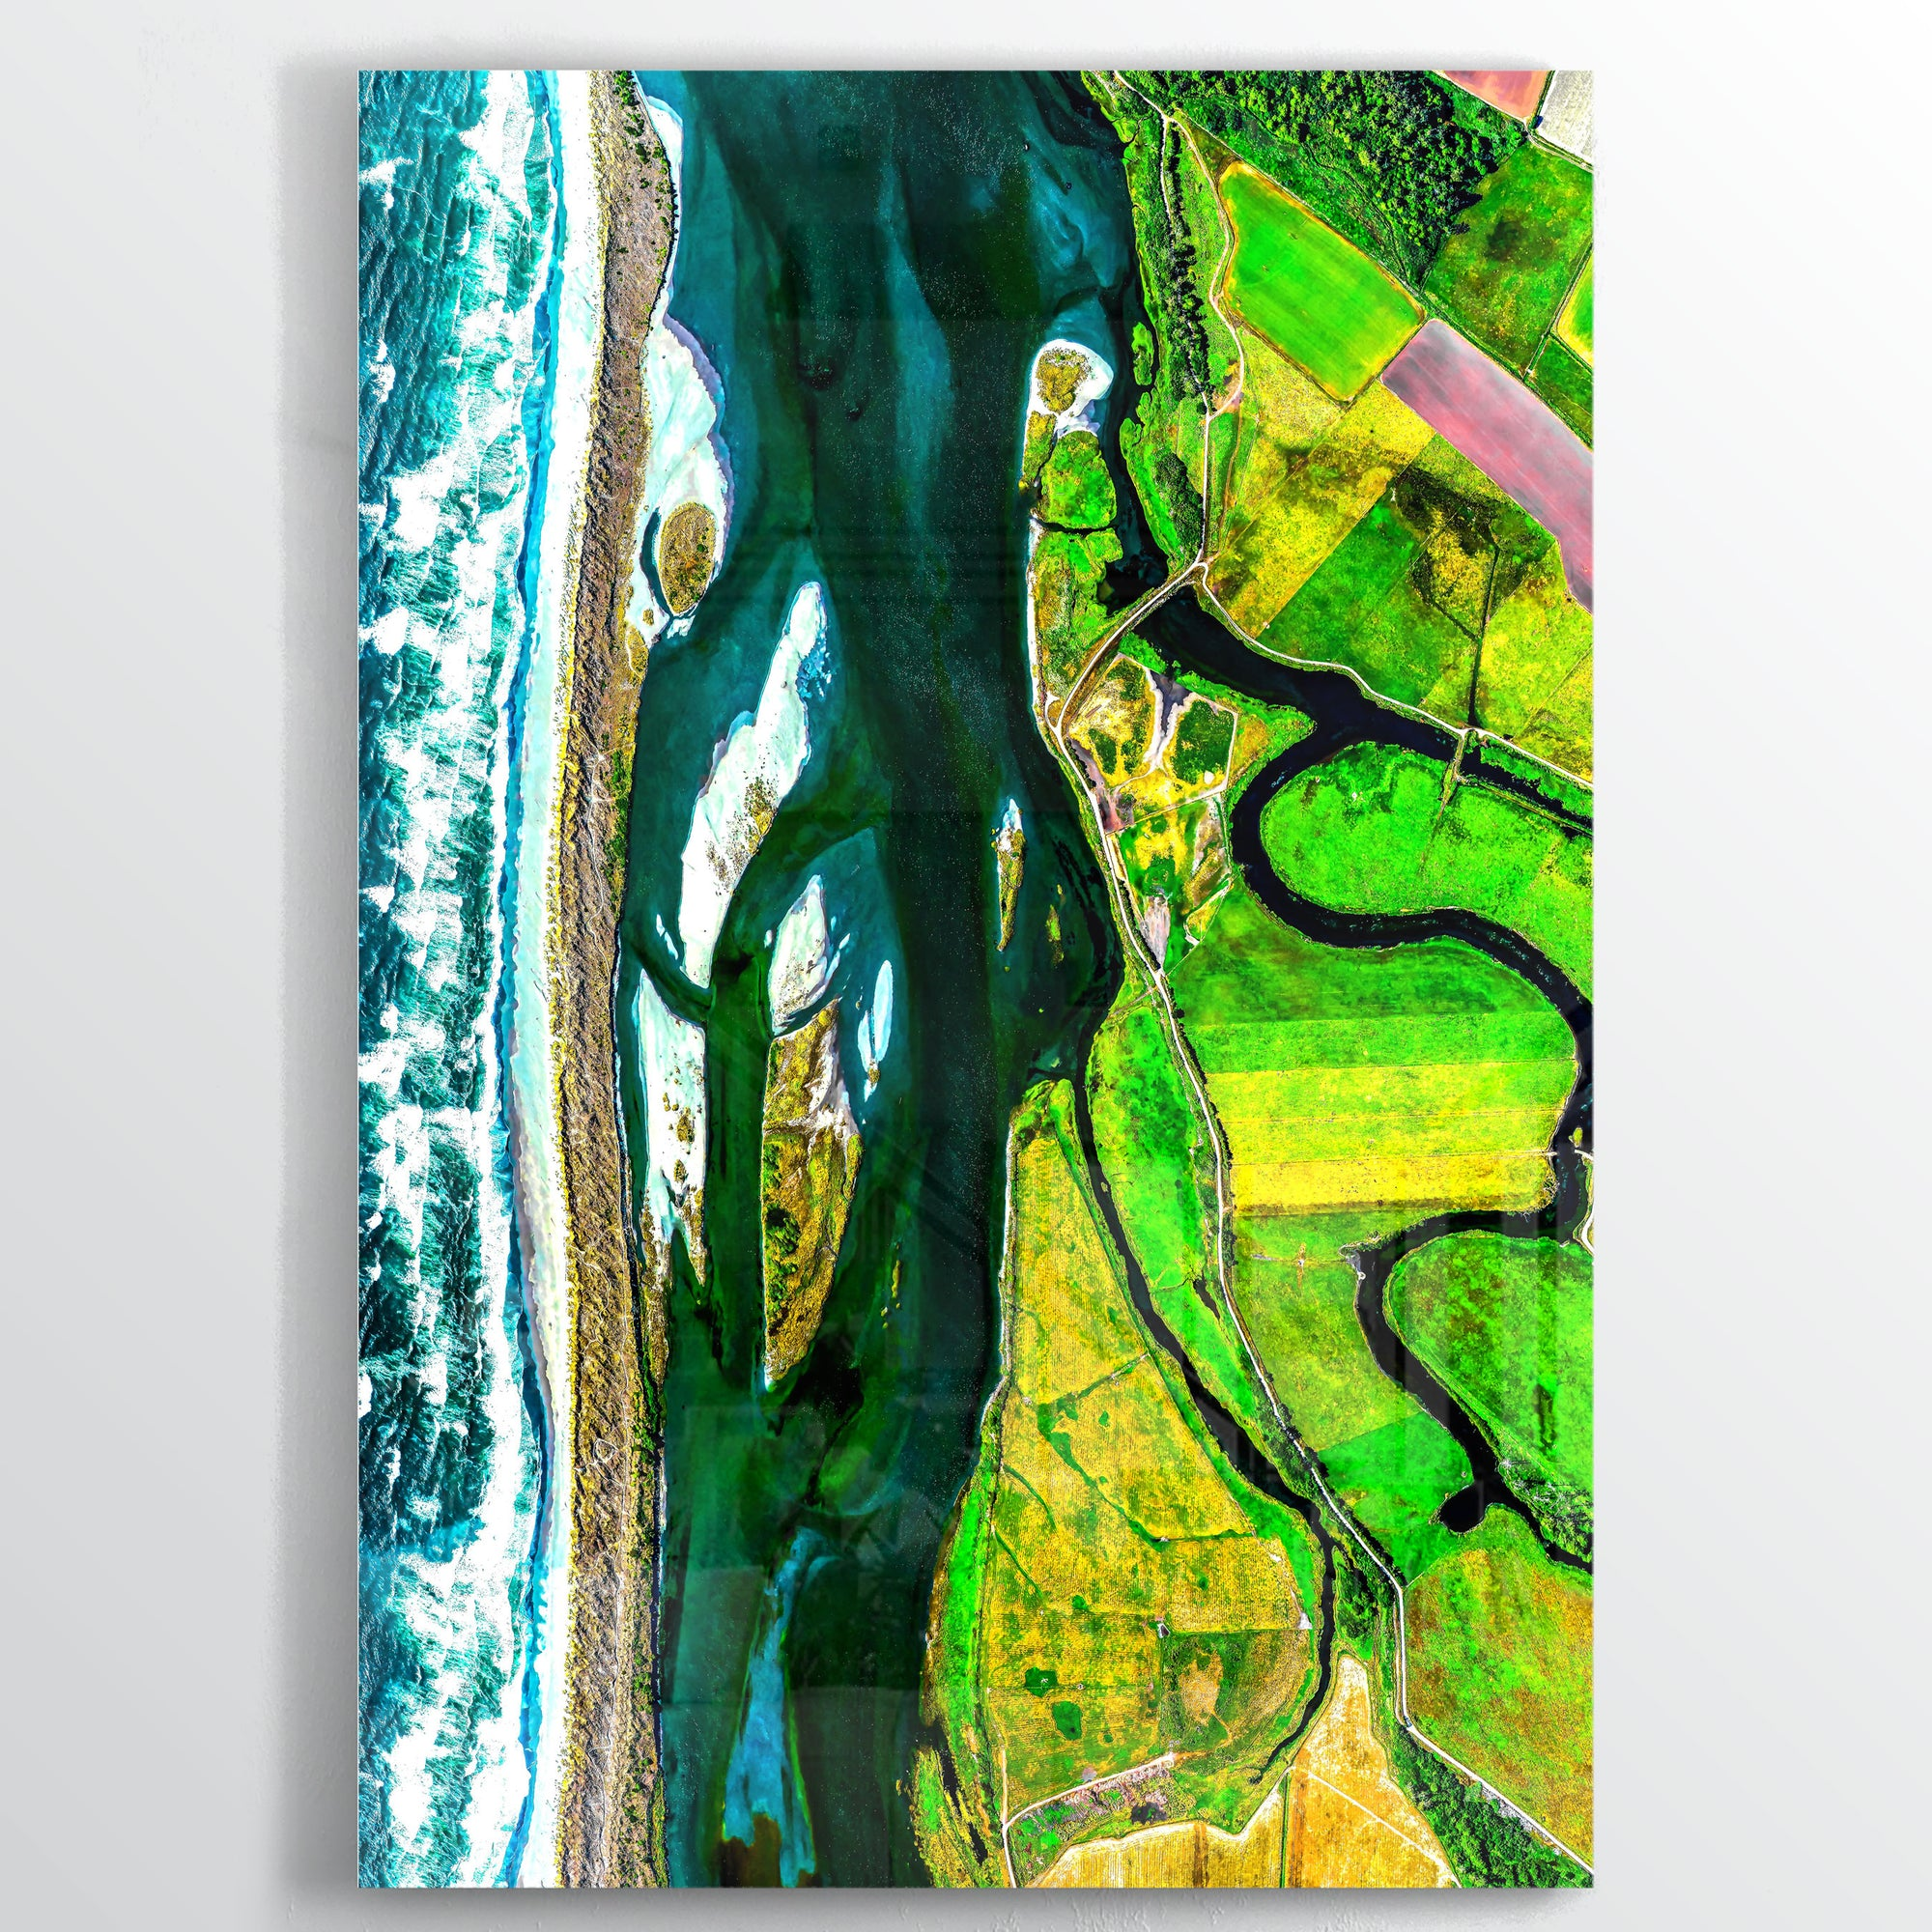 7668 Earth Photography - Floating Acrylic Art - Point Two Design